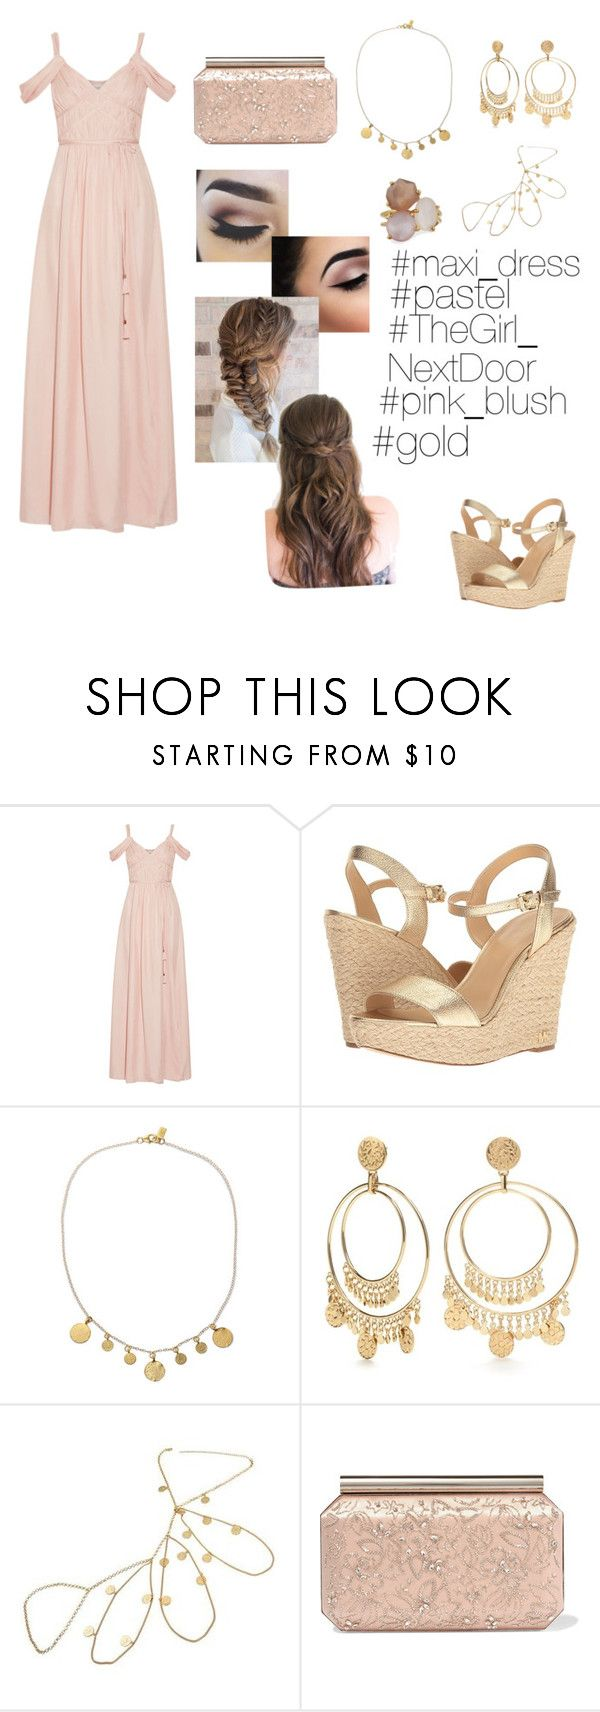 """Pastel??"" by devanshimallick ❤ liked on Polyvore featuring Rachel Zoe, MICHAEL Michael Kors, Electric Picks, Kate Spade, Oscar de la Renta and Ippolita"